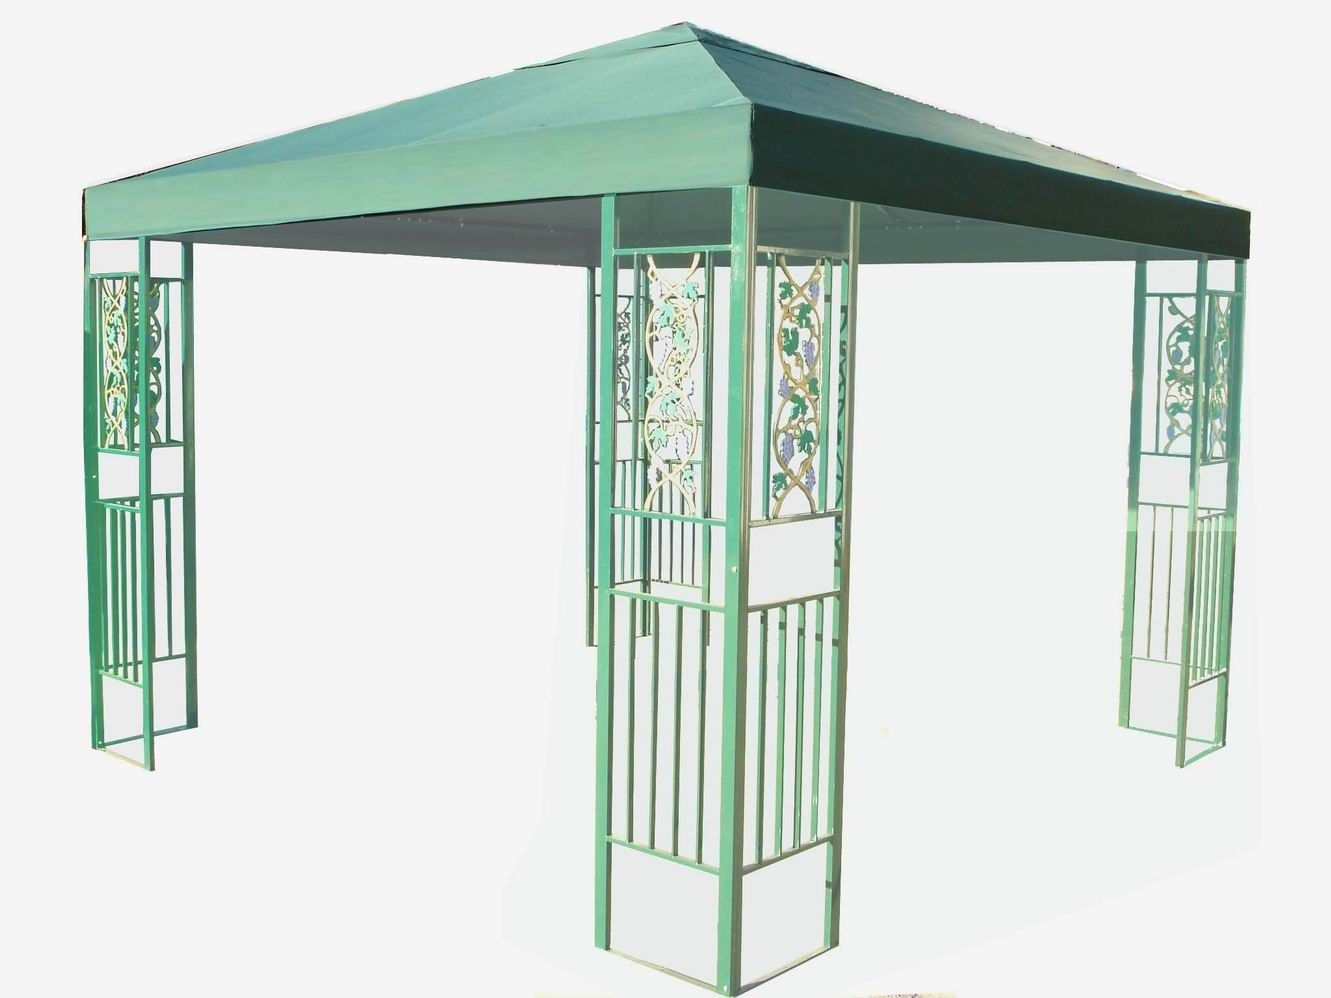 Gazebo Kits Archives Gazebos For Sale On Gazebo Kings Gazebo Metal Gazebo Kits Gazebo Sale